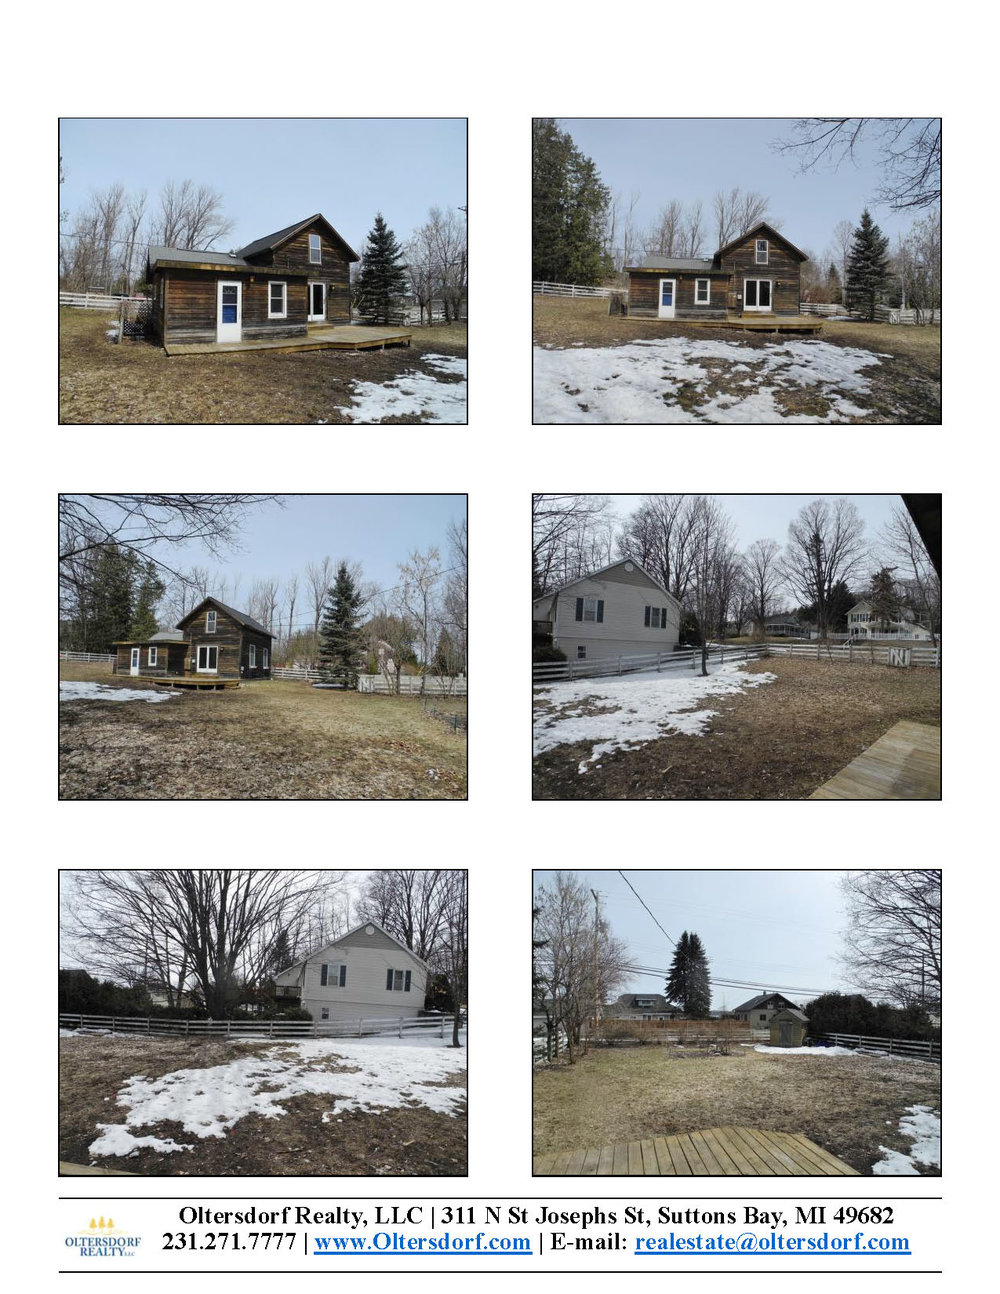 616 N St. Mary's, Suttons Bay, House for sale by Oltersdorf Realty LLC (2).jpg